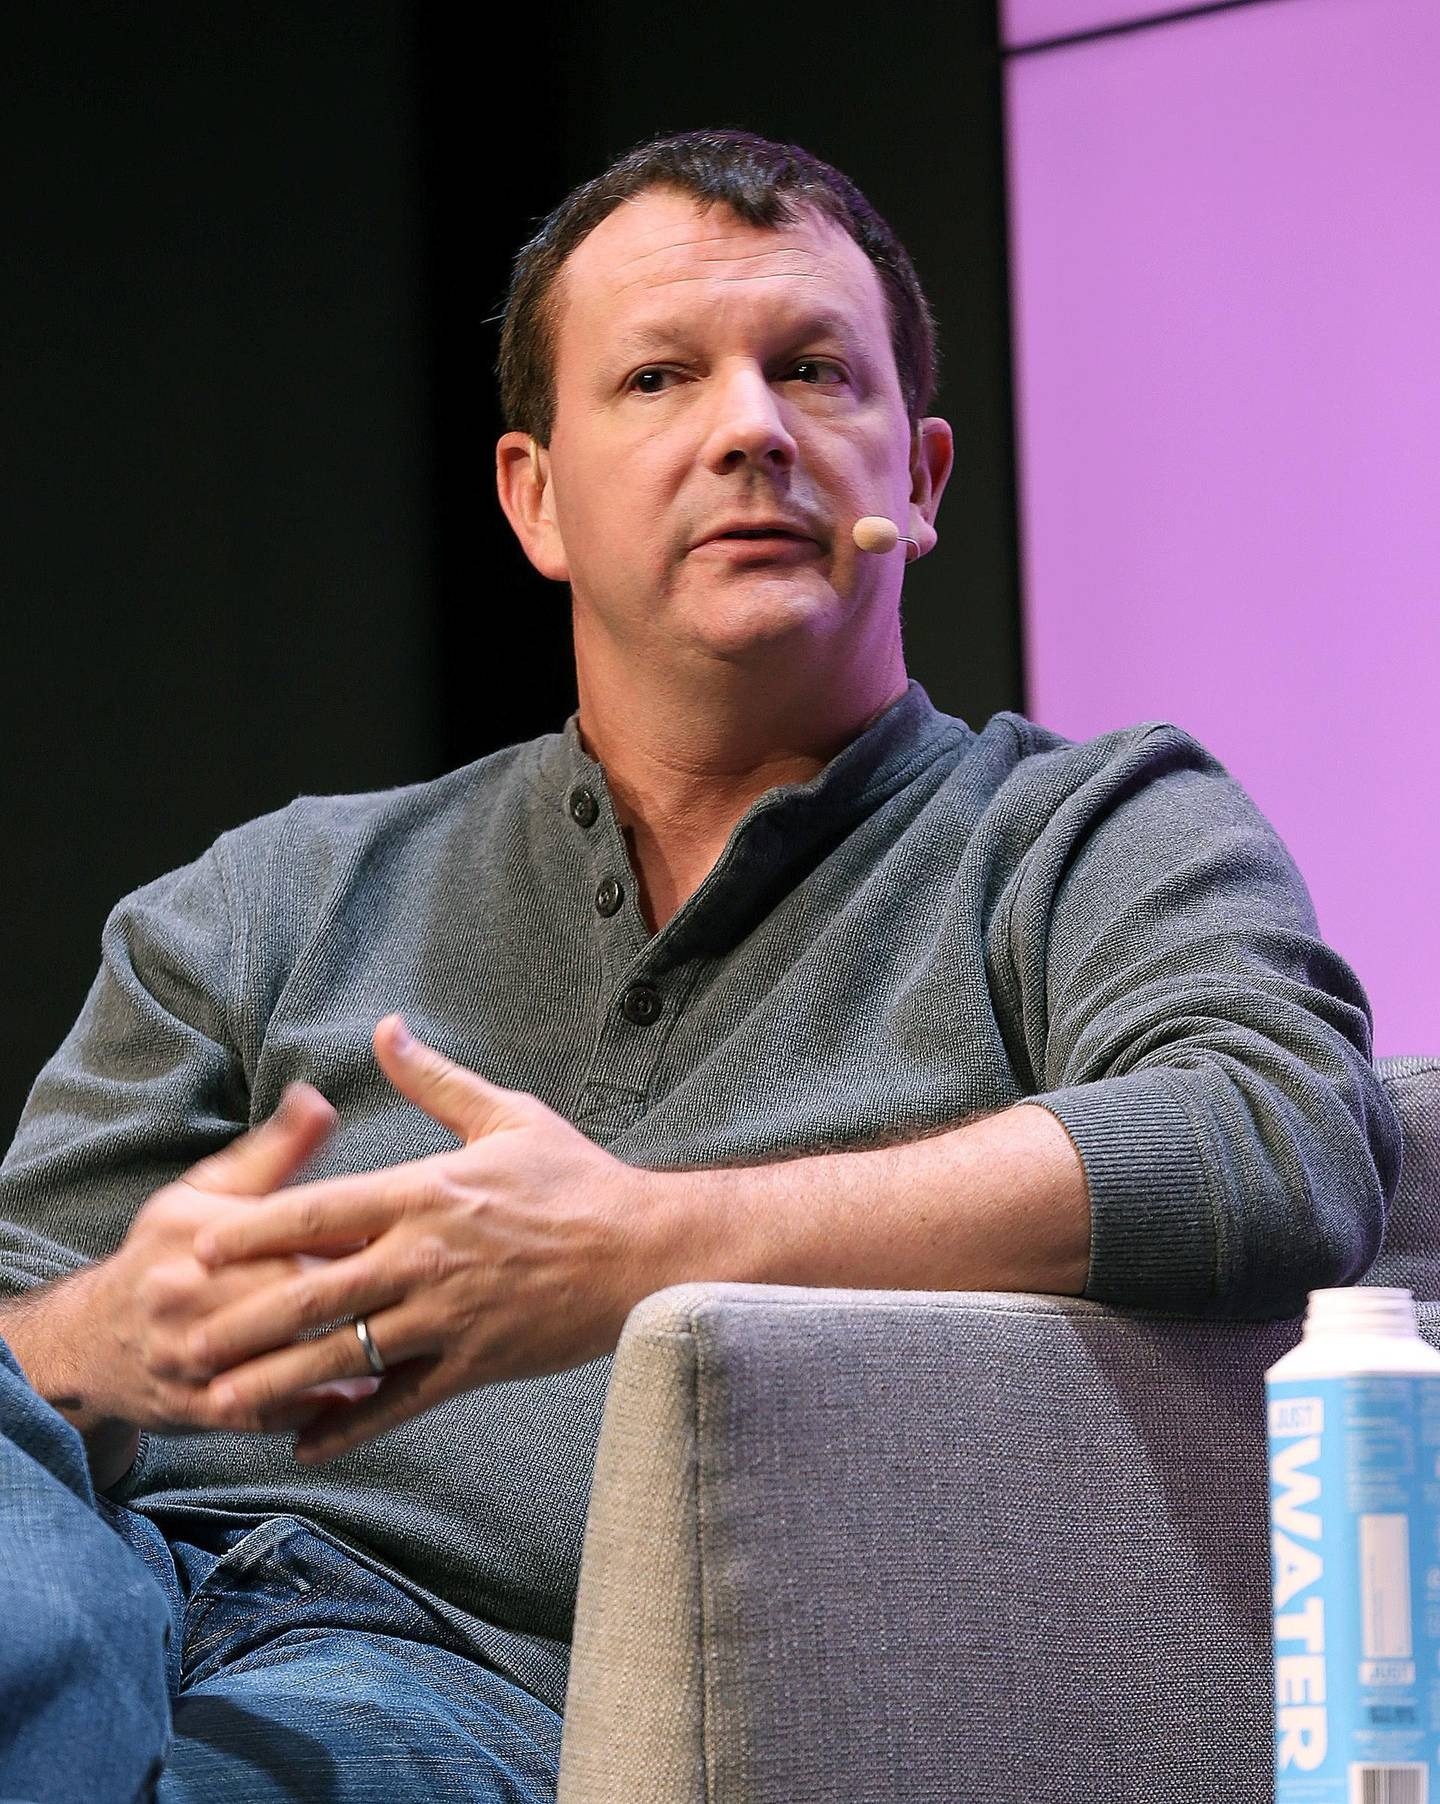 SAN FRANCISCO, CALIFORNIA - NOVEMBER 08: Brian Acton speaks onstage at the WIRED25 Summit 2019 - Day 1 at Commonwealth Club on November 08, 2019 in San Francisco, California.   Phillip Faraone/Getty Images for WIRED/AFP